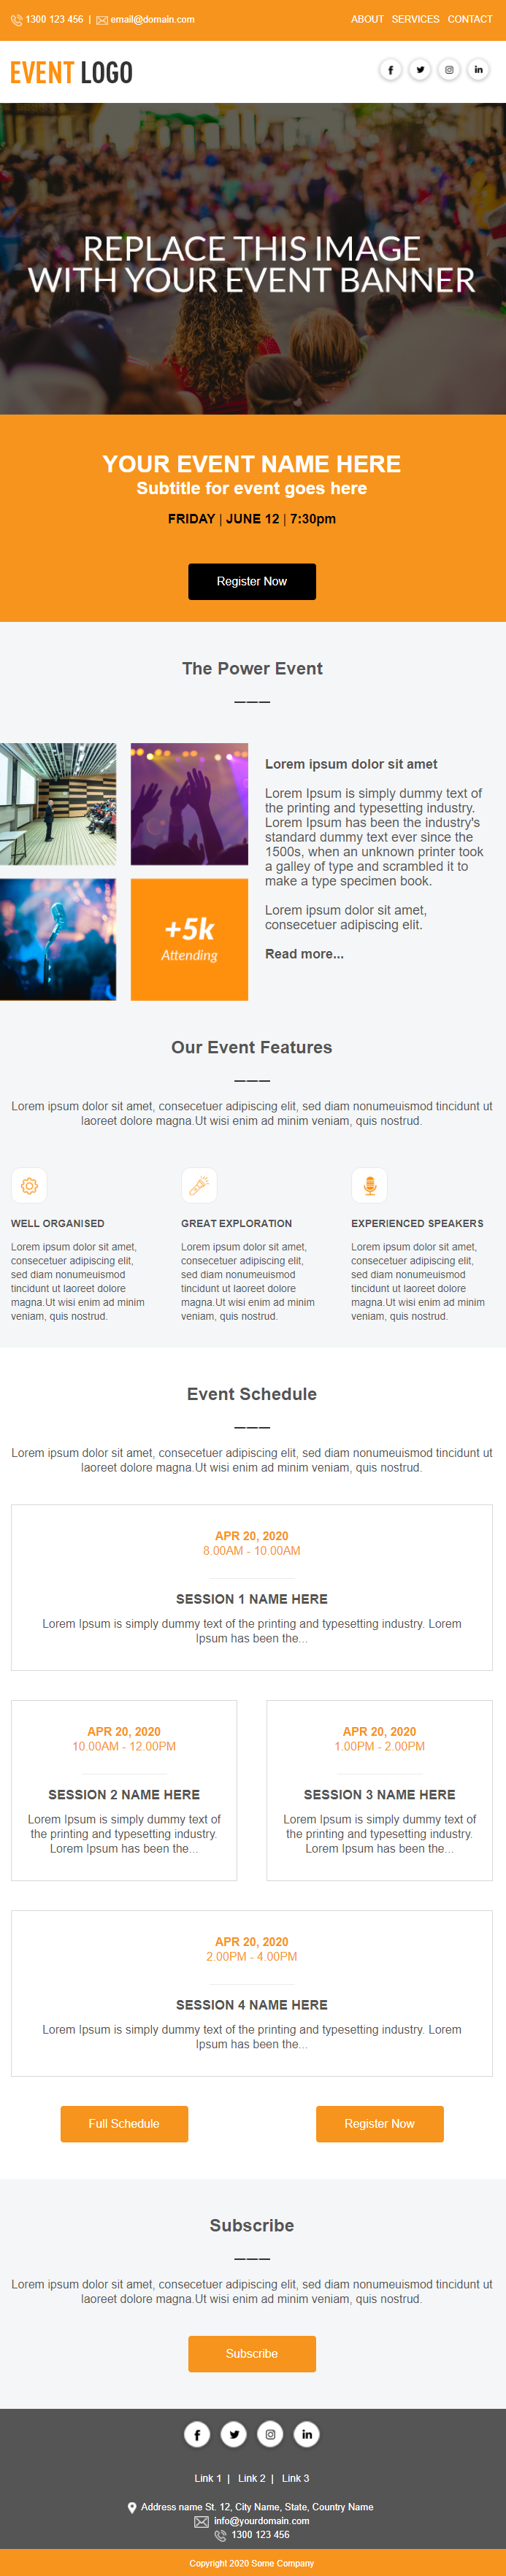 Event Invitation Email Template #1